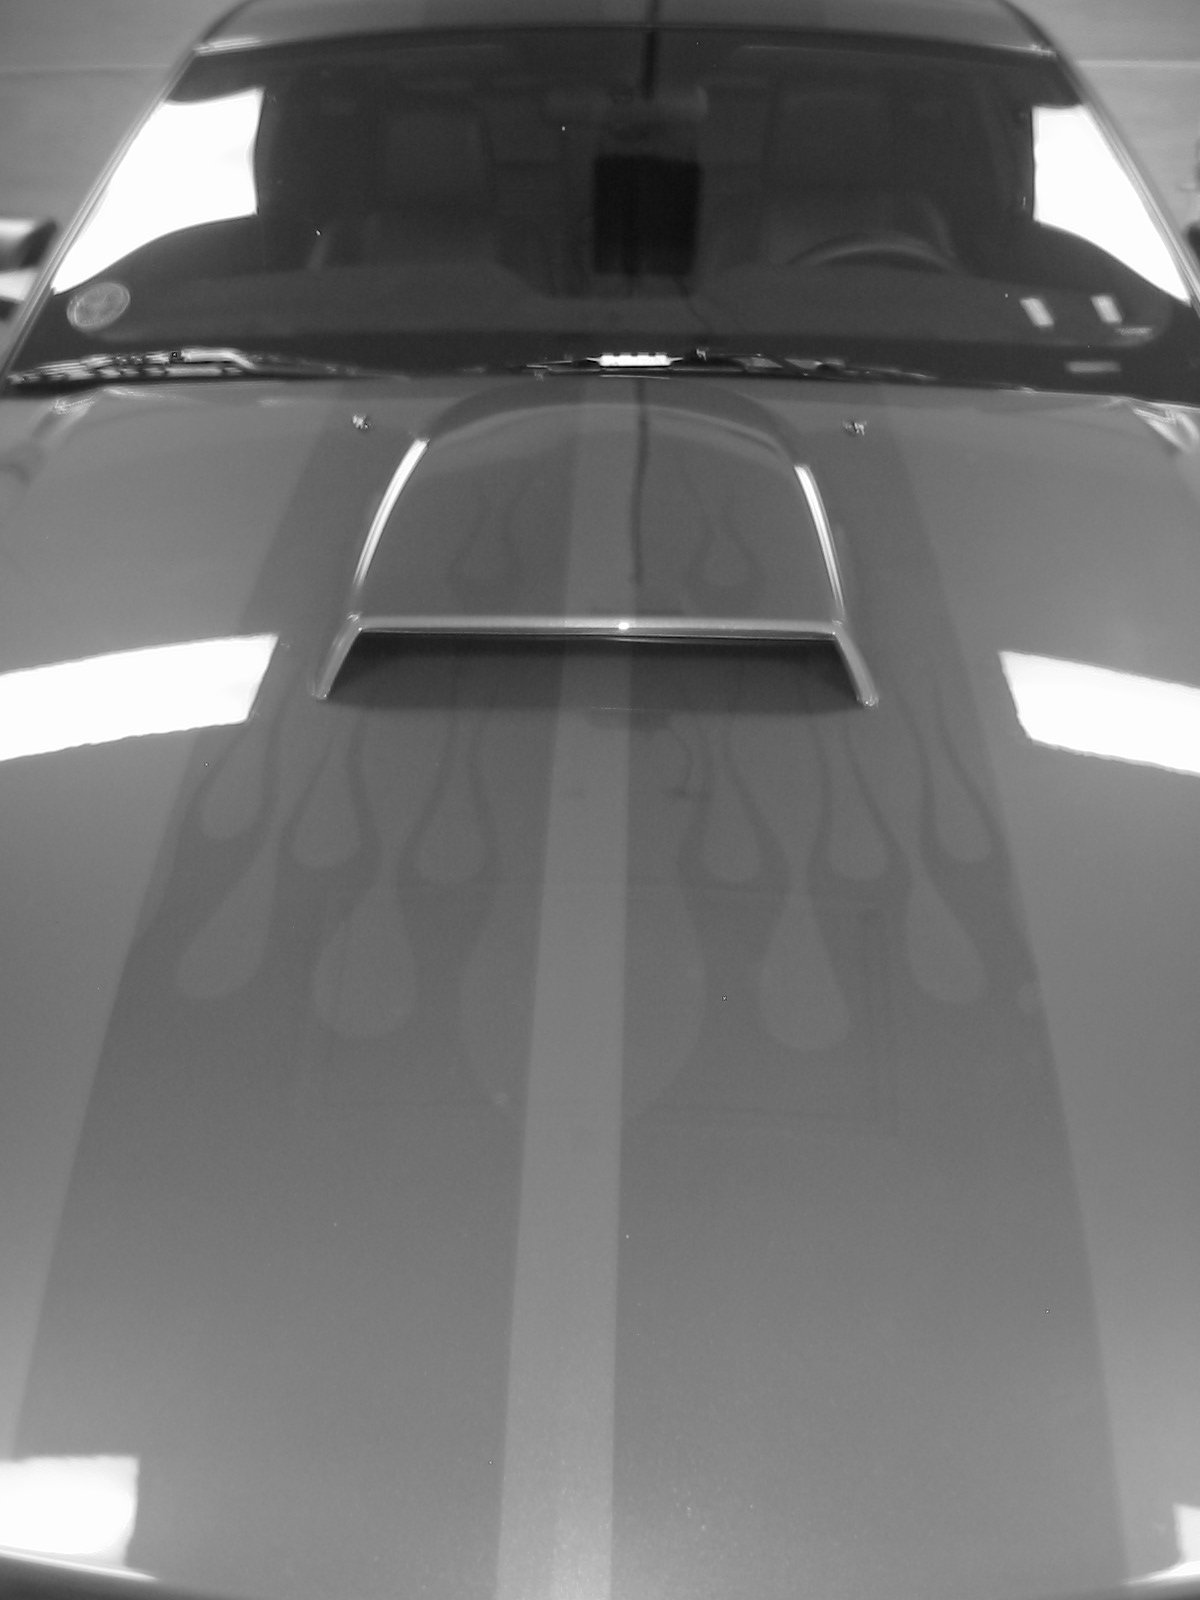 04 Mustang Gt >> Ghost stripes - Ford Mustang Forum